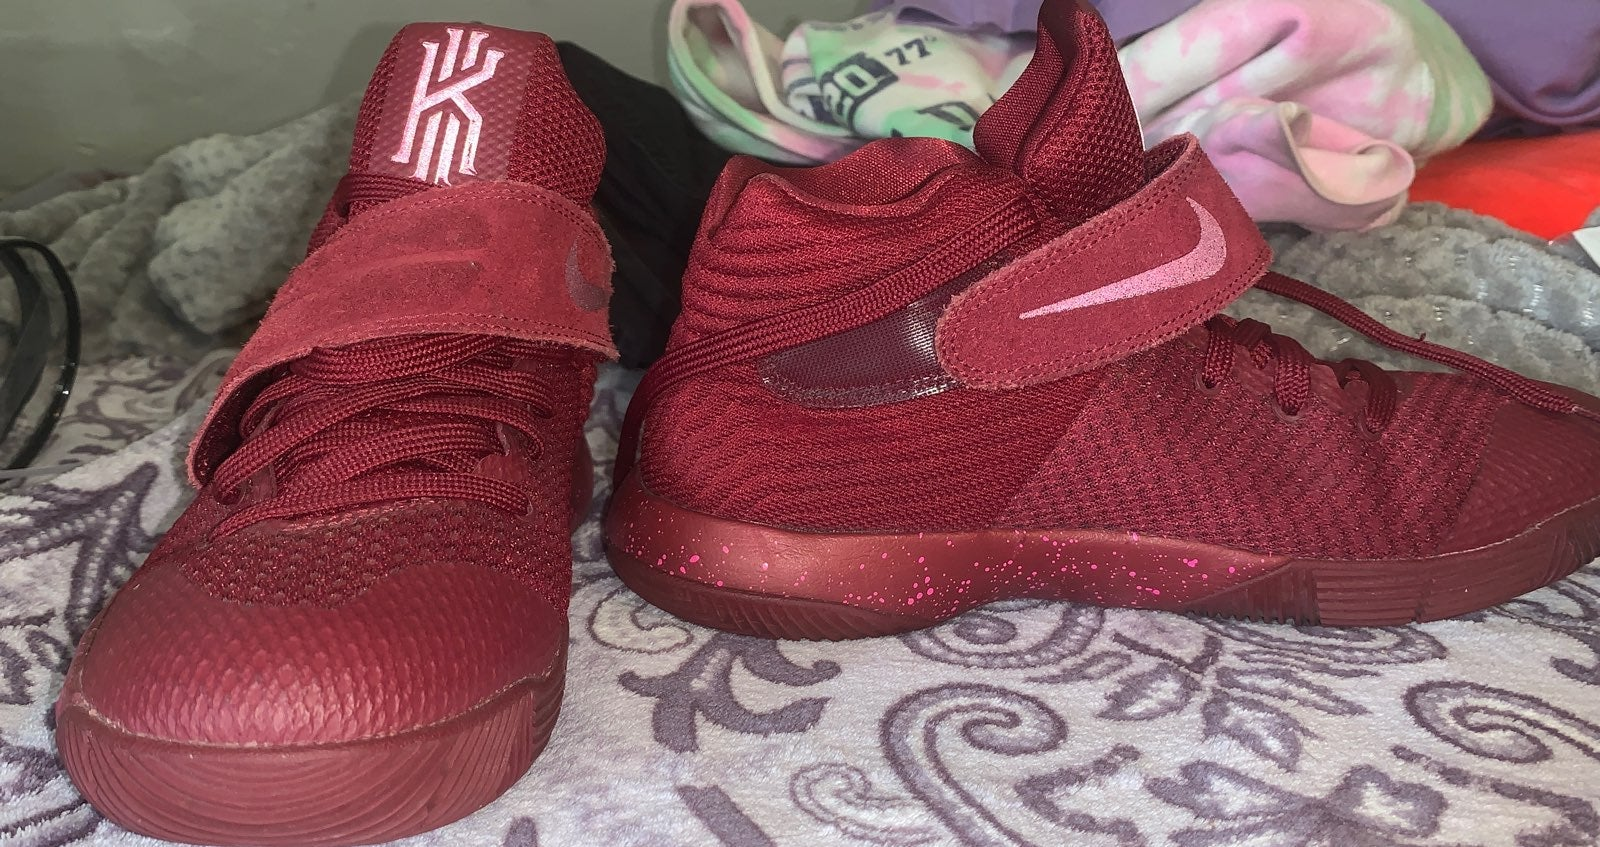 Kyrie Nike basketball shoes